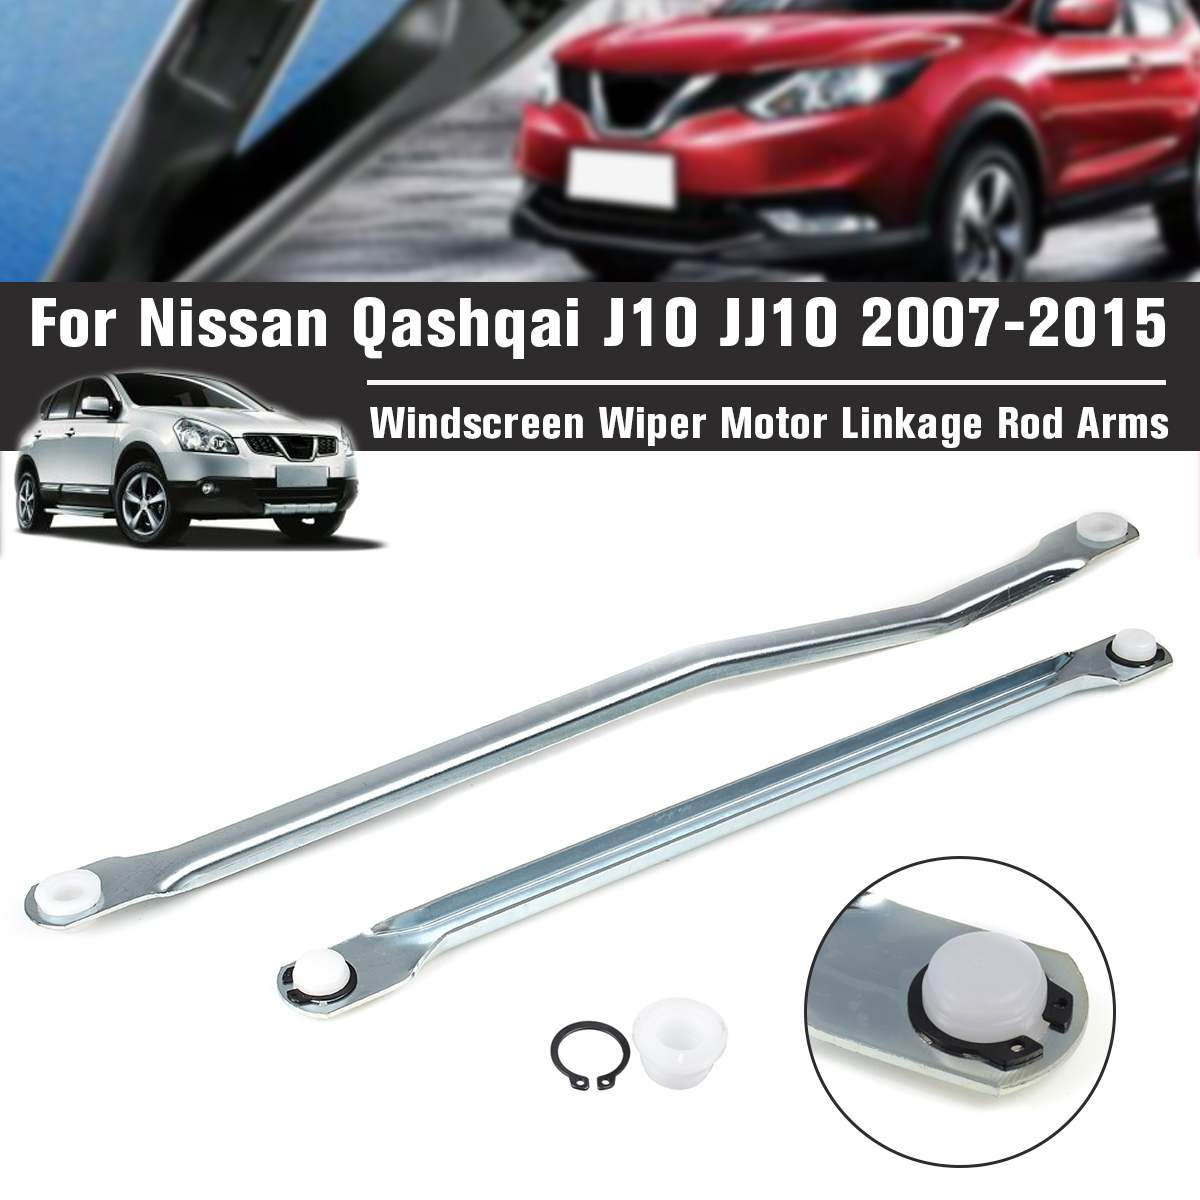 2PCS Windscreen Wiper Motor Linkage Rod Arms For Nissan Qashqai J10 JJ10 2007-2015 upgraded high-quality plastic smoother(China)